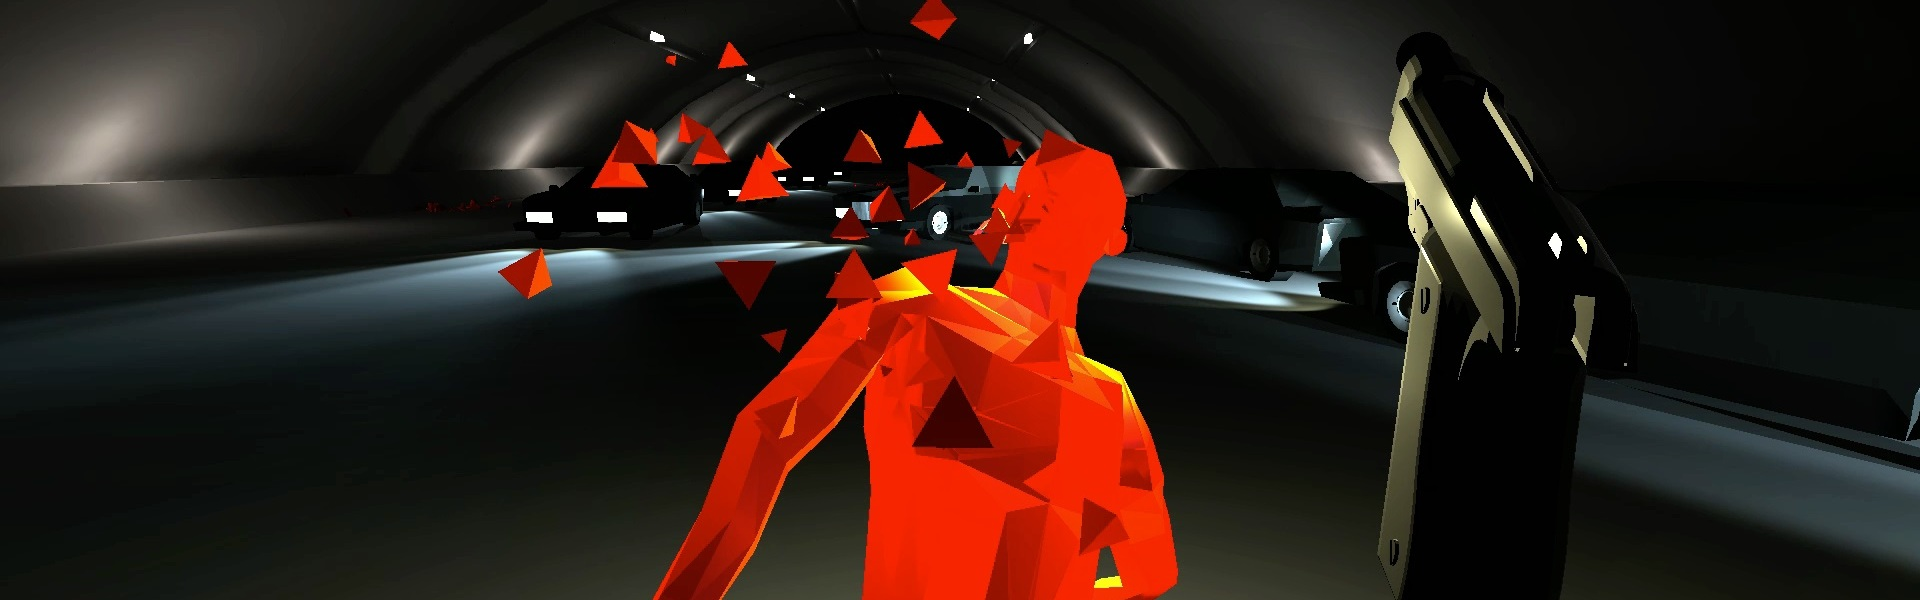 SUPERHOT [VR] Steam Key GLOBAL